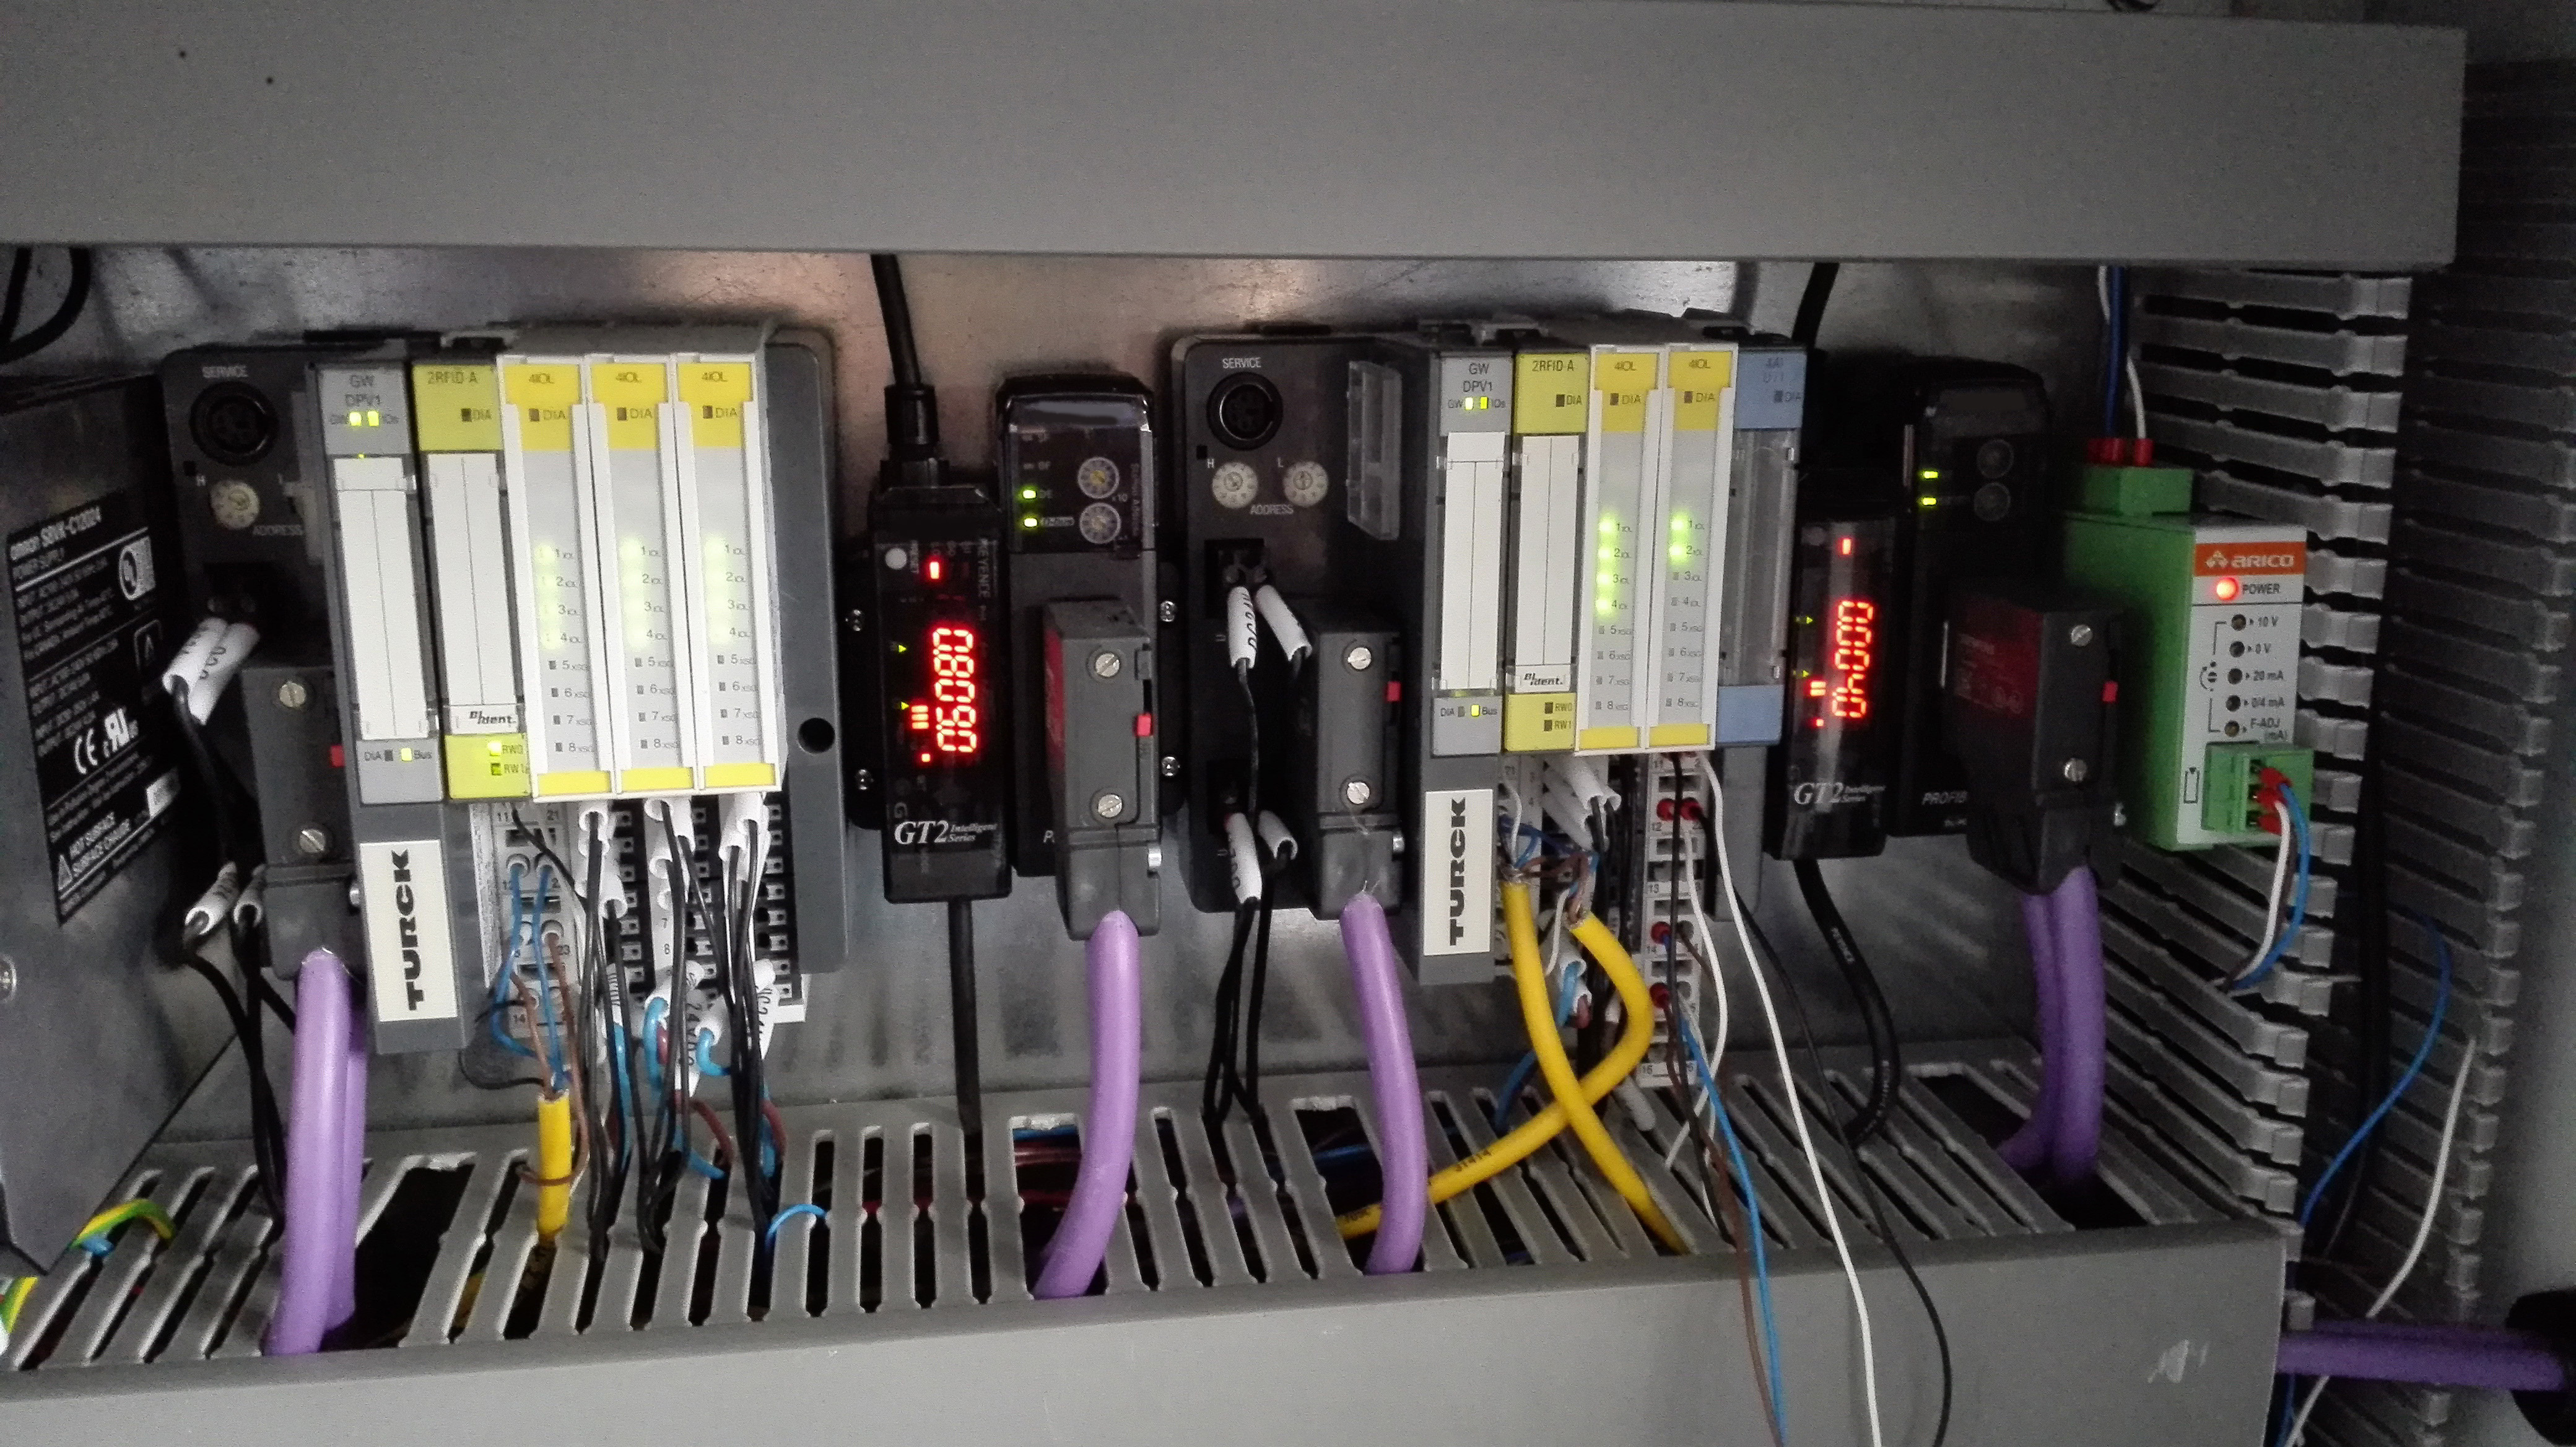 Io Link Eases Differential Gear Production Turck Your Global Split Ether Cable Together With Patch Panel Wiring Also Manual Sobre Besides Hundreds Of Switching Signals Two Bl20 Bring Rfid And Analog To The Plc